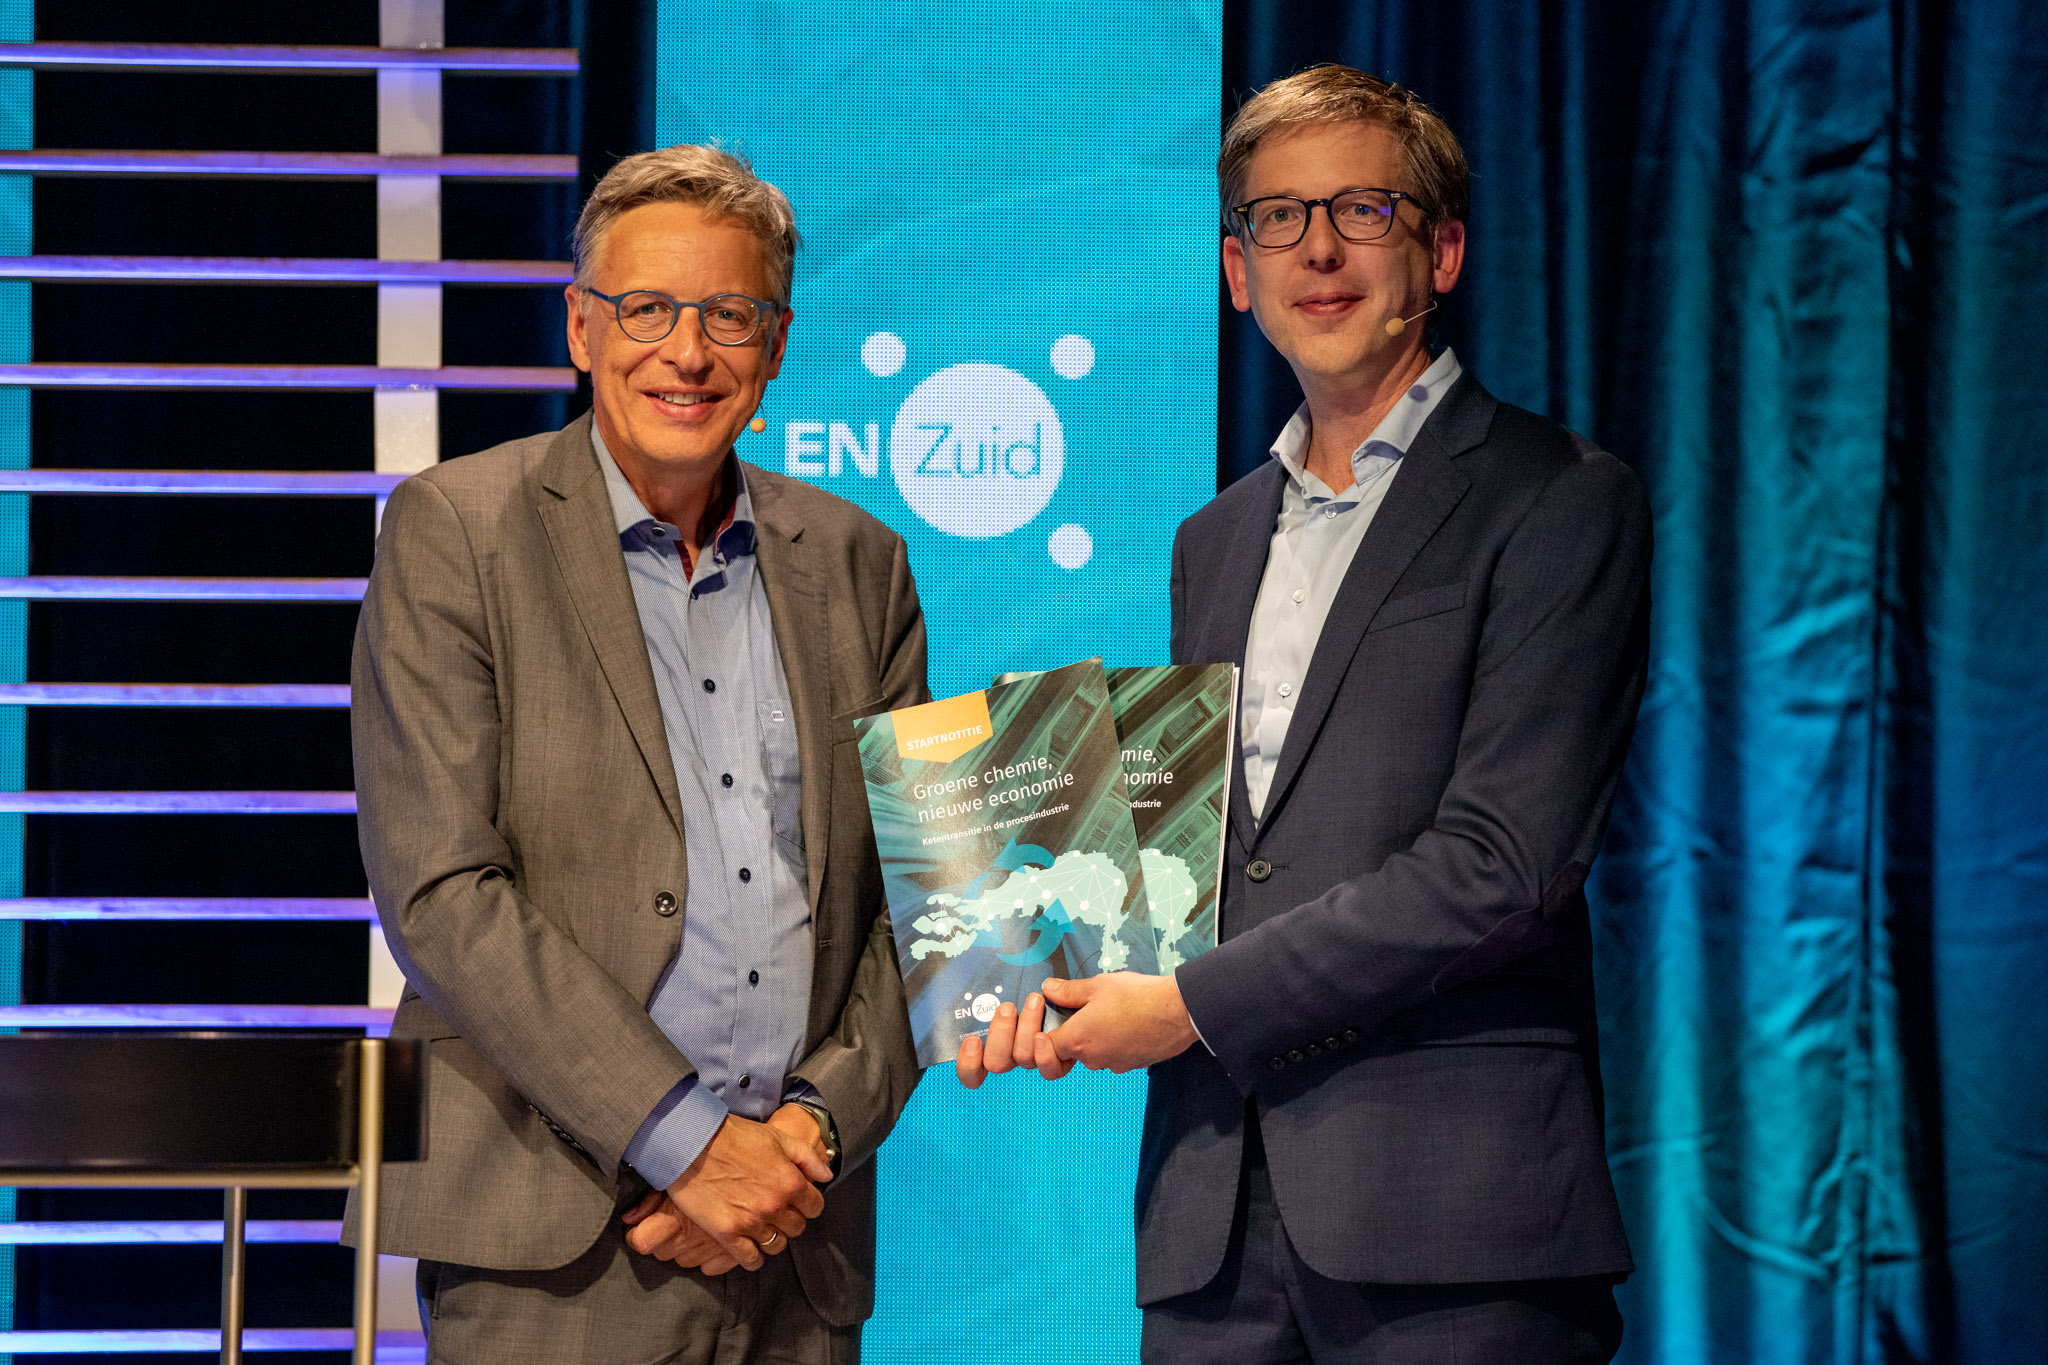 ENZuid presents 'Green chemistry, new economy', concrete initiatives to achieve climate goals